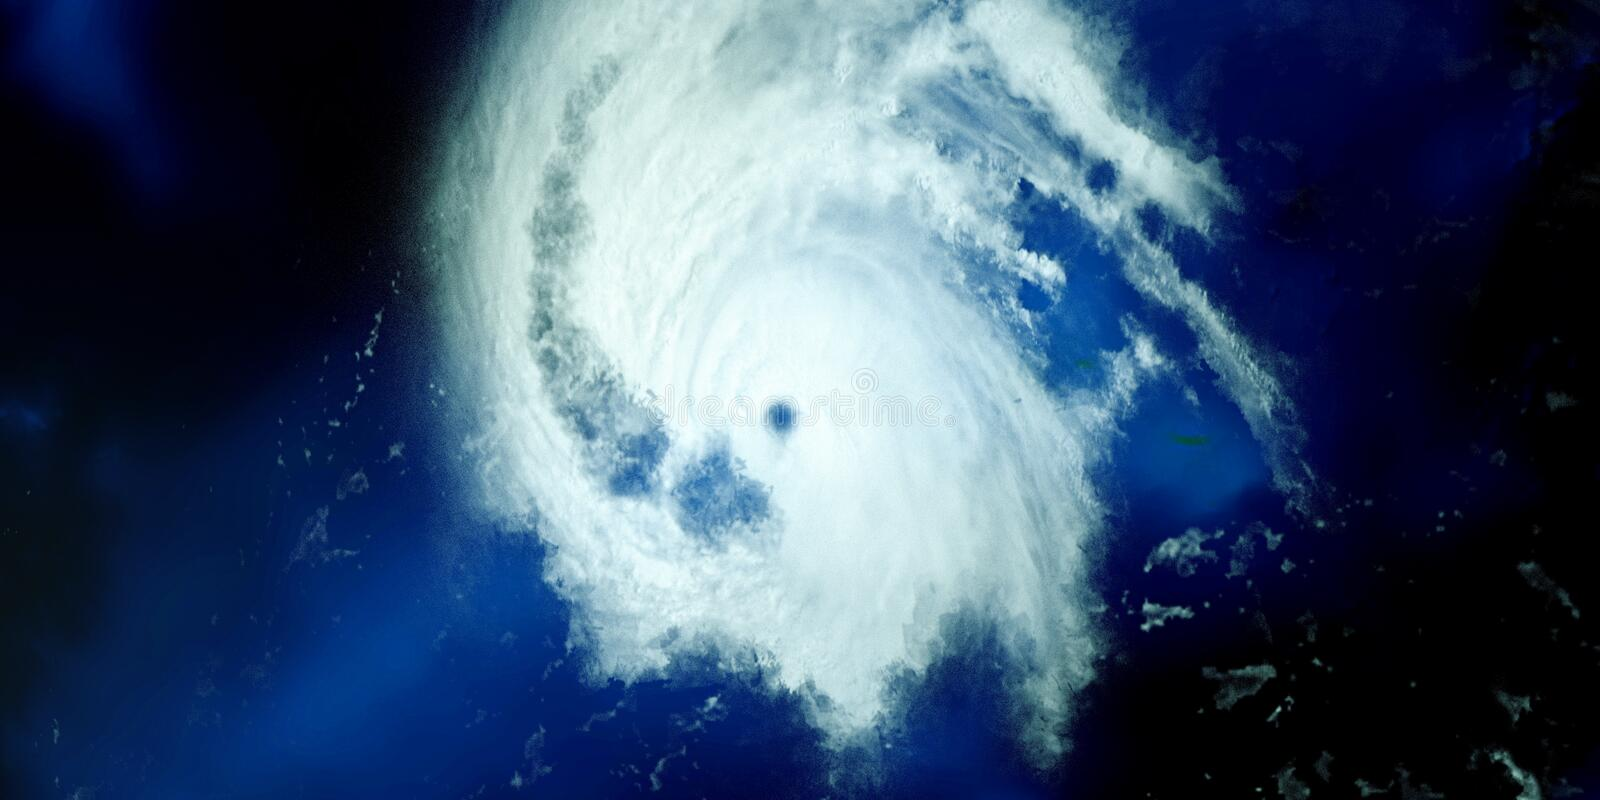 Extremely detailed and realistic high resolution 3D illustration of a Hurricane. Shot from Space. Elements of this image are furni. Extremely detailed and stock photo